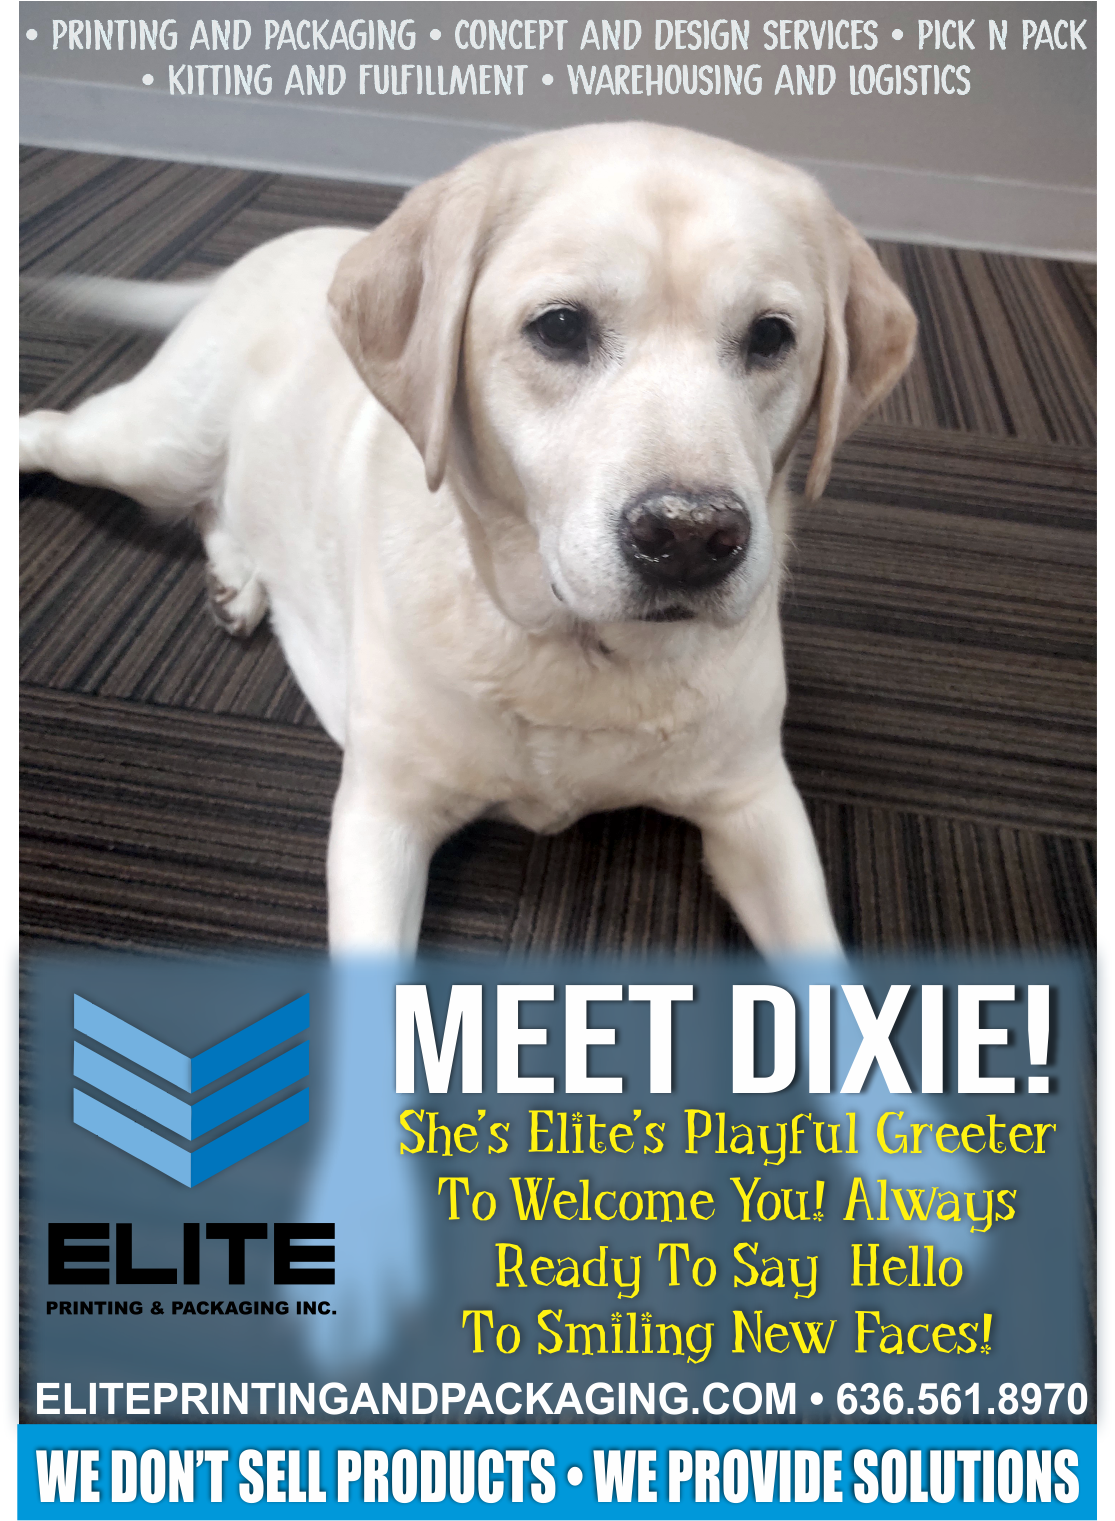 Dixie takes her job seriously as the friendliest office greeter!